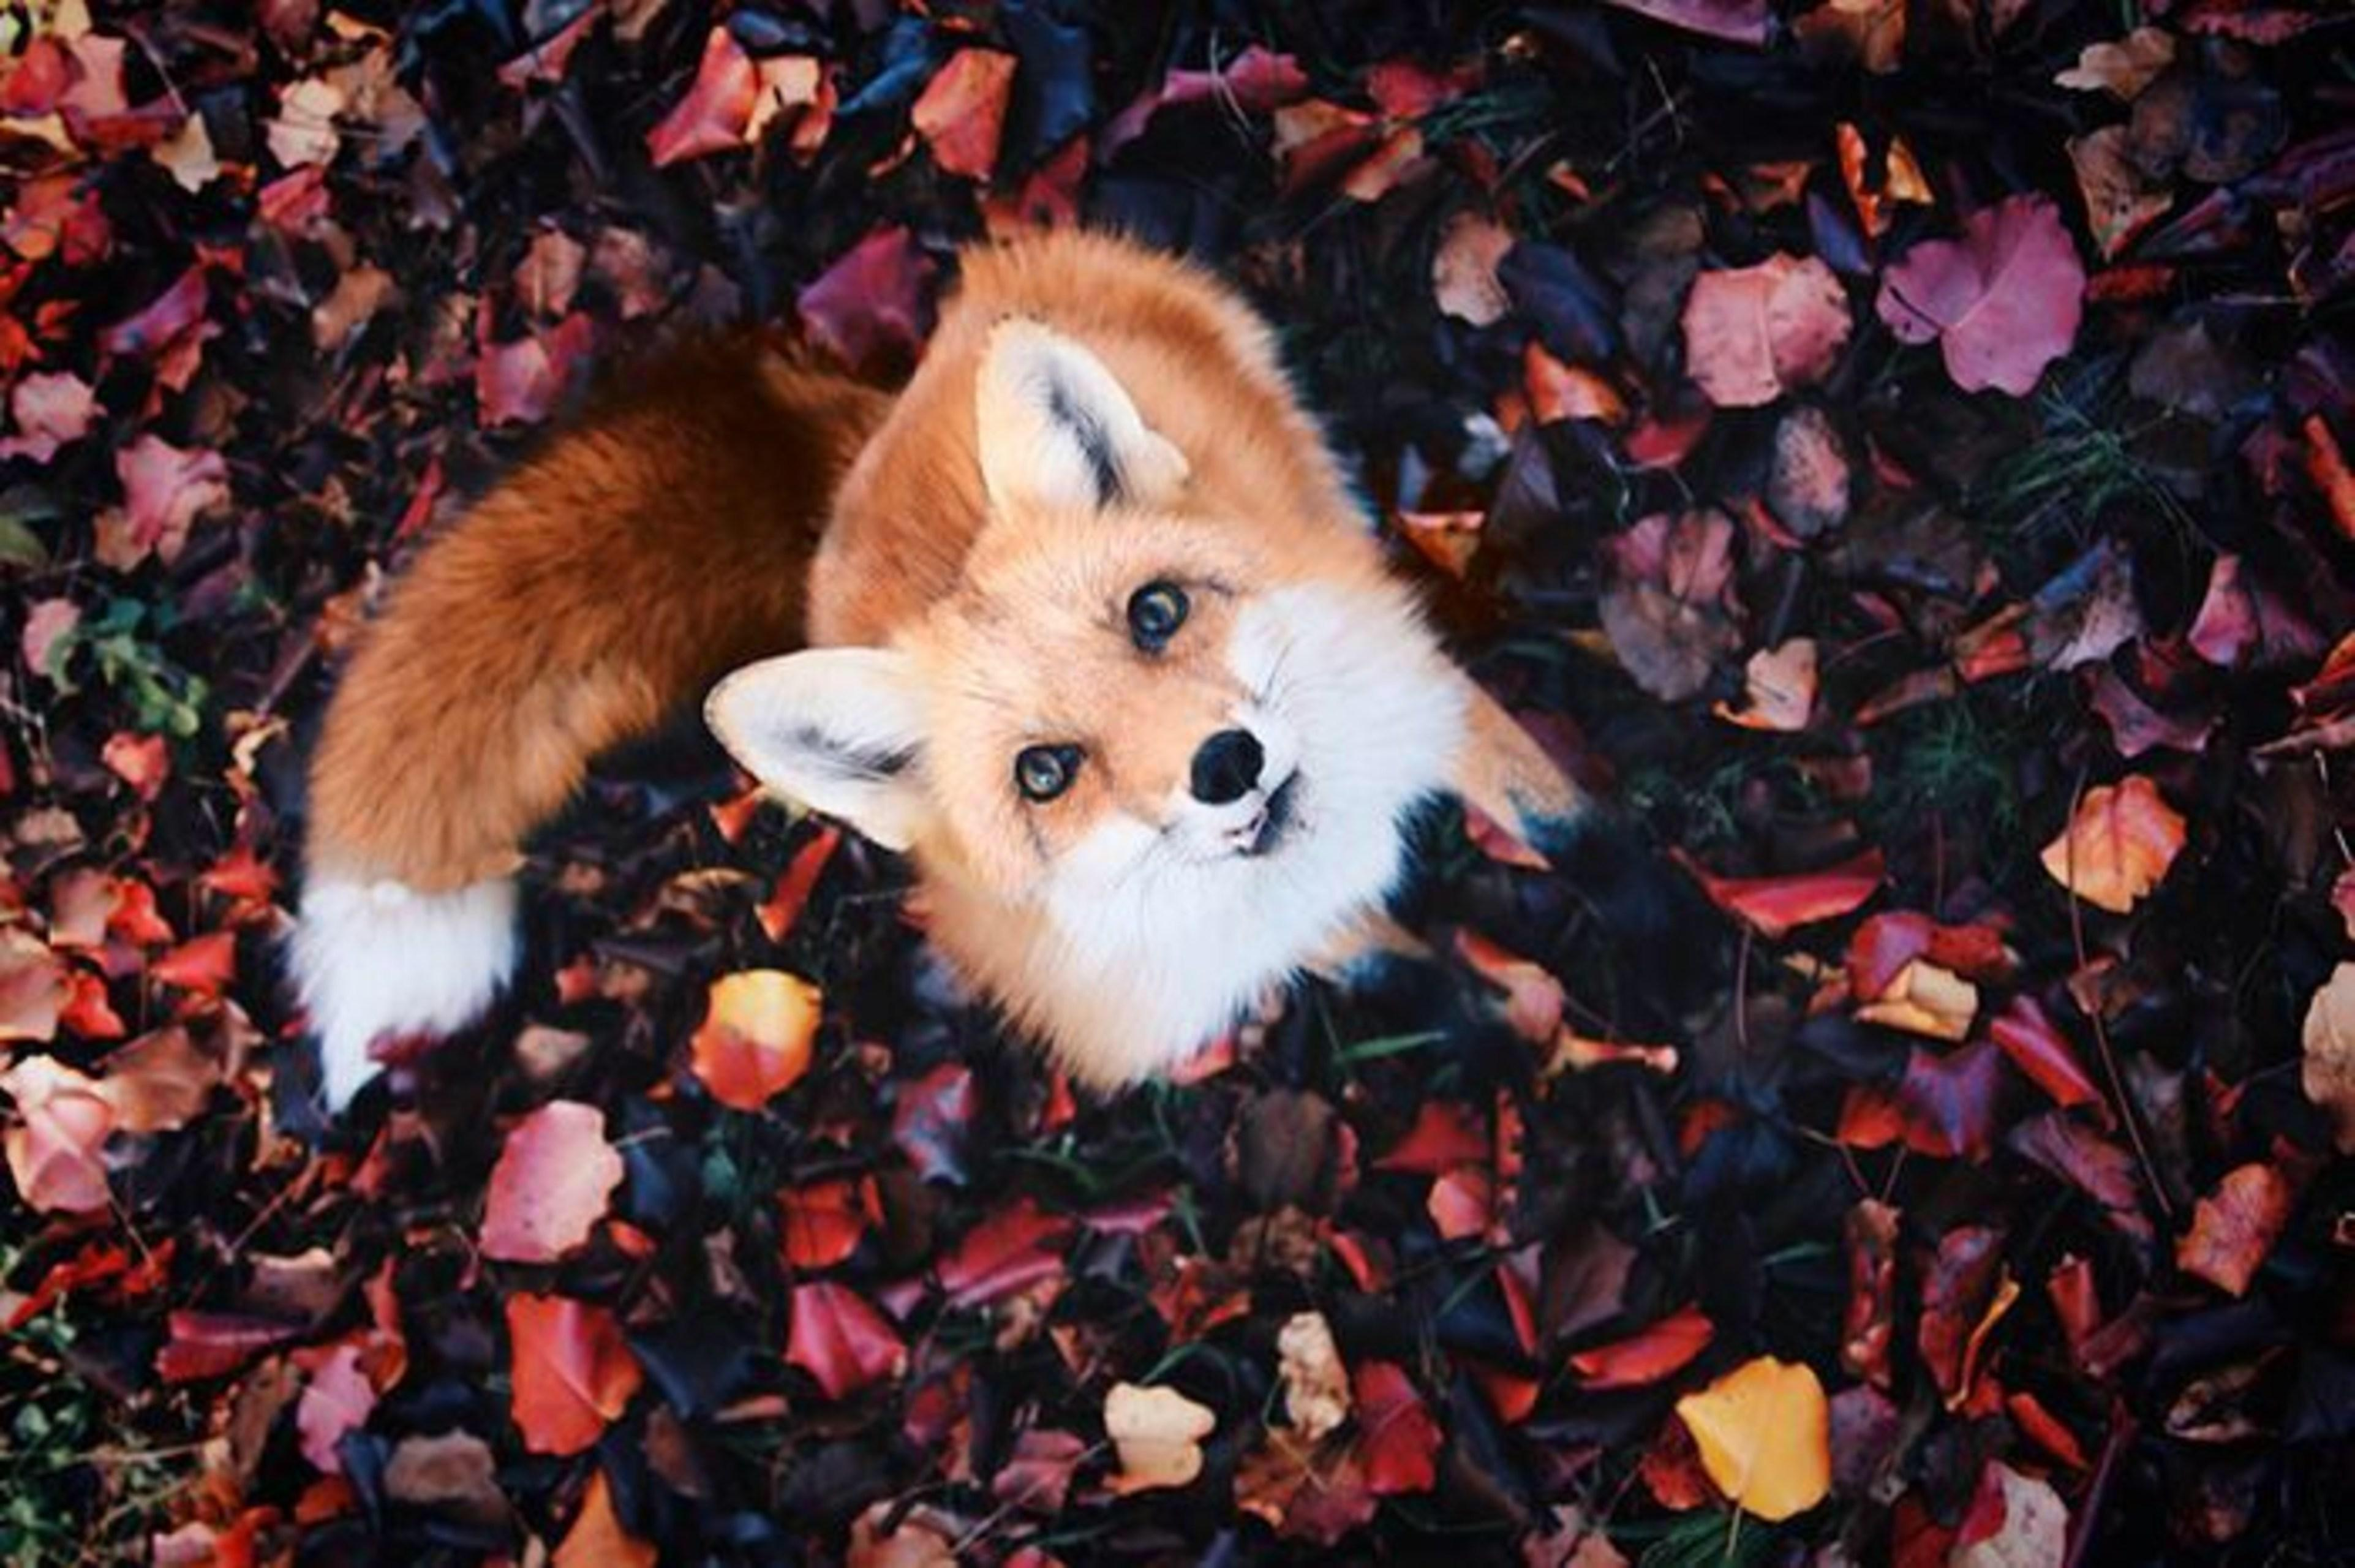 The colour contrast and this incredibly photogenic fox